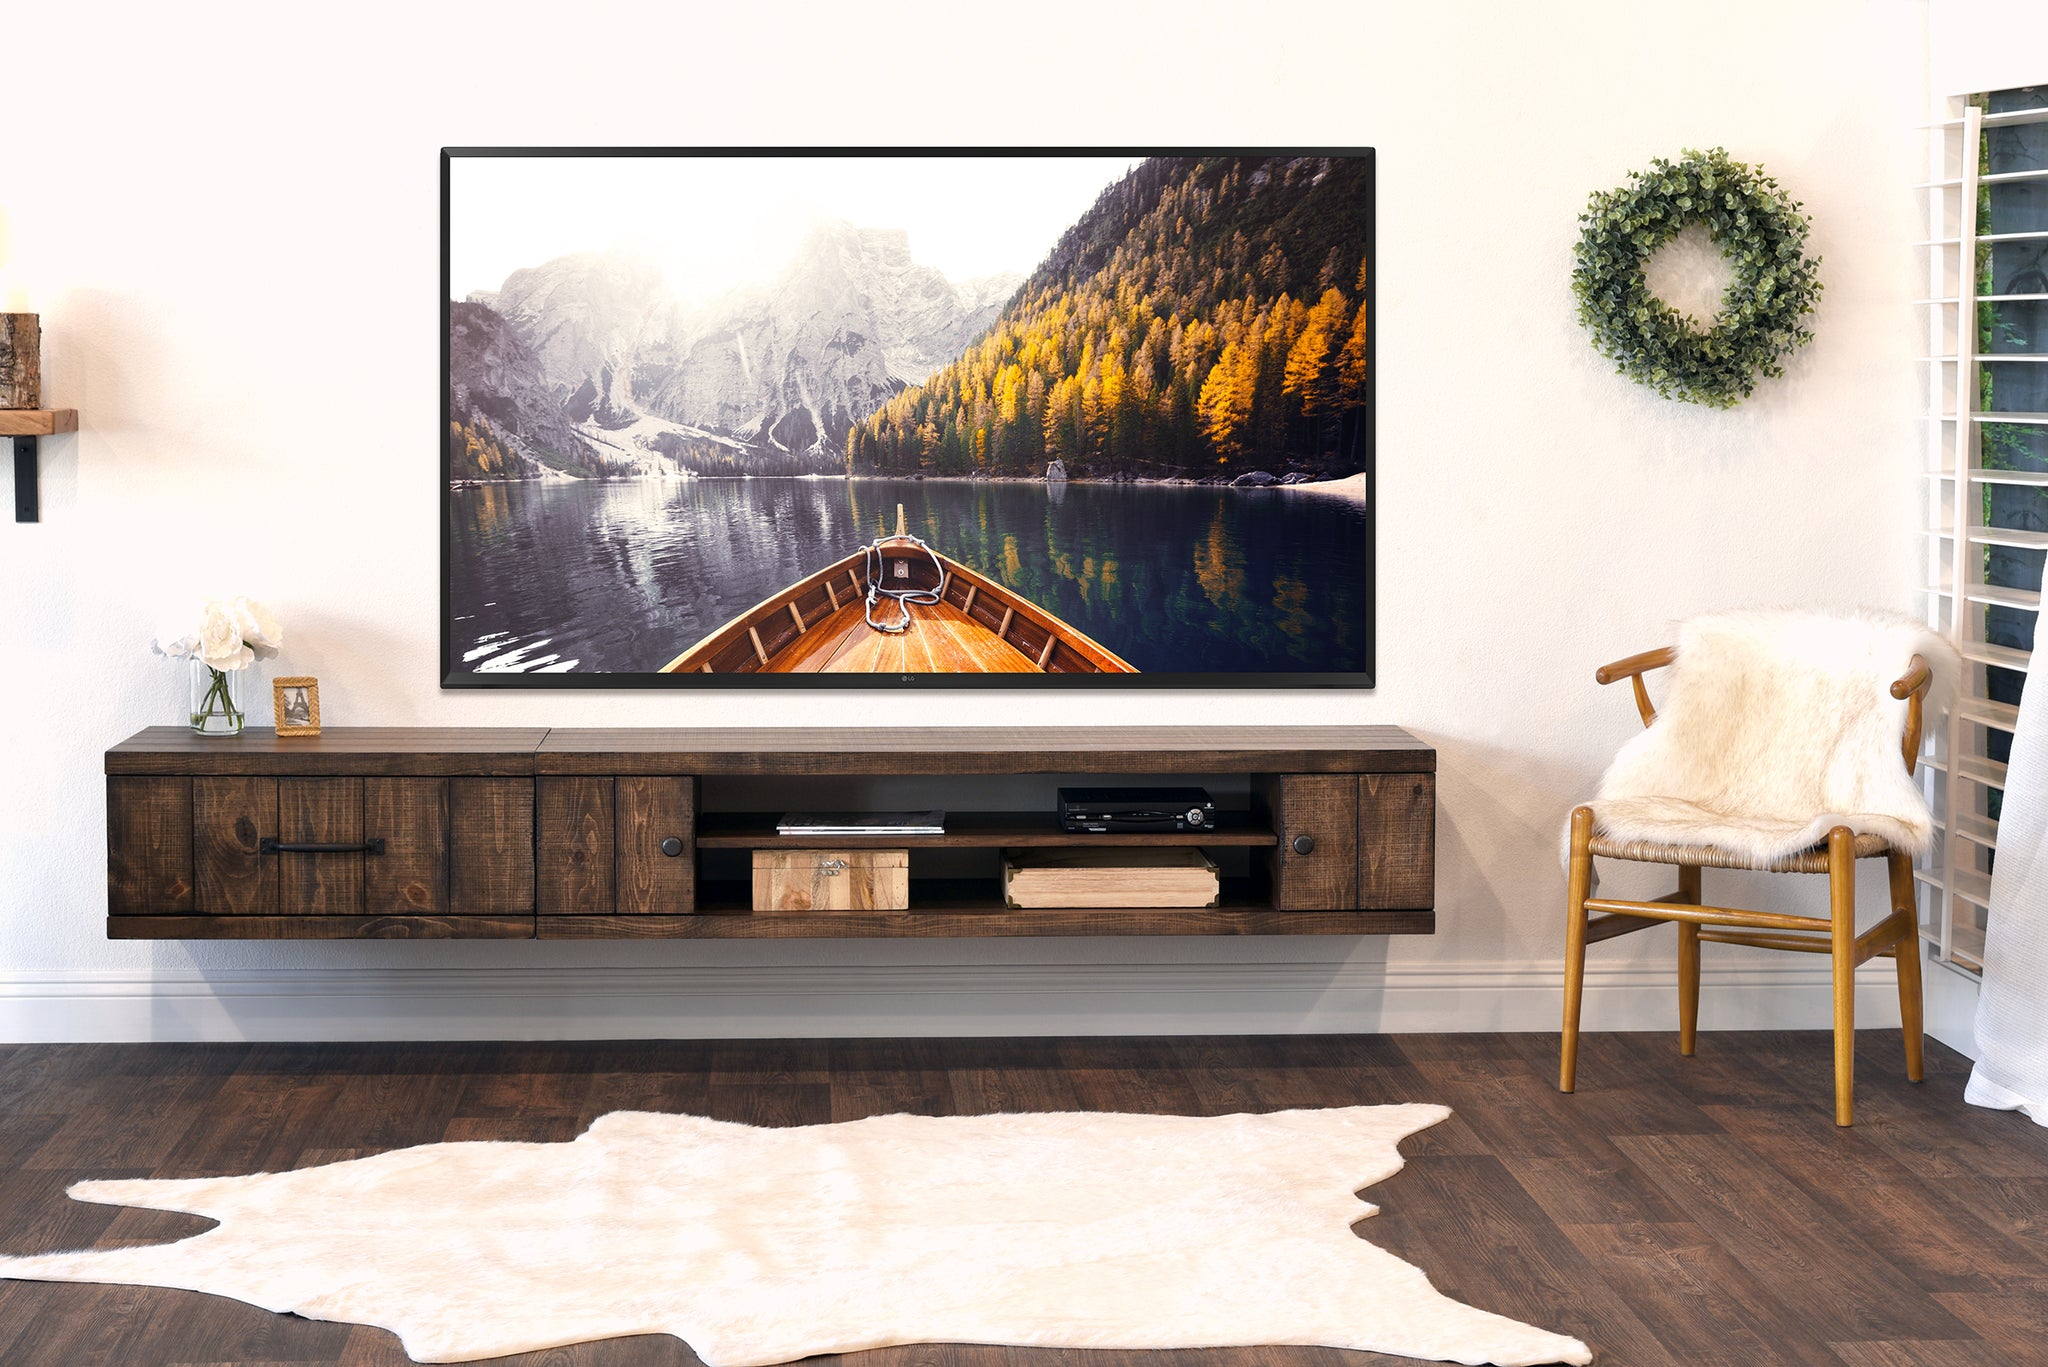 separation shoes 09b41 b86d9 Rustic Barn Wood Style Floating TV Stand Wall Mount Entertainment Center -  Farmhouse - Spice